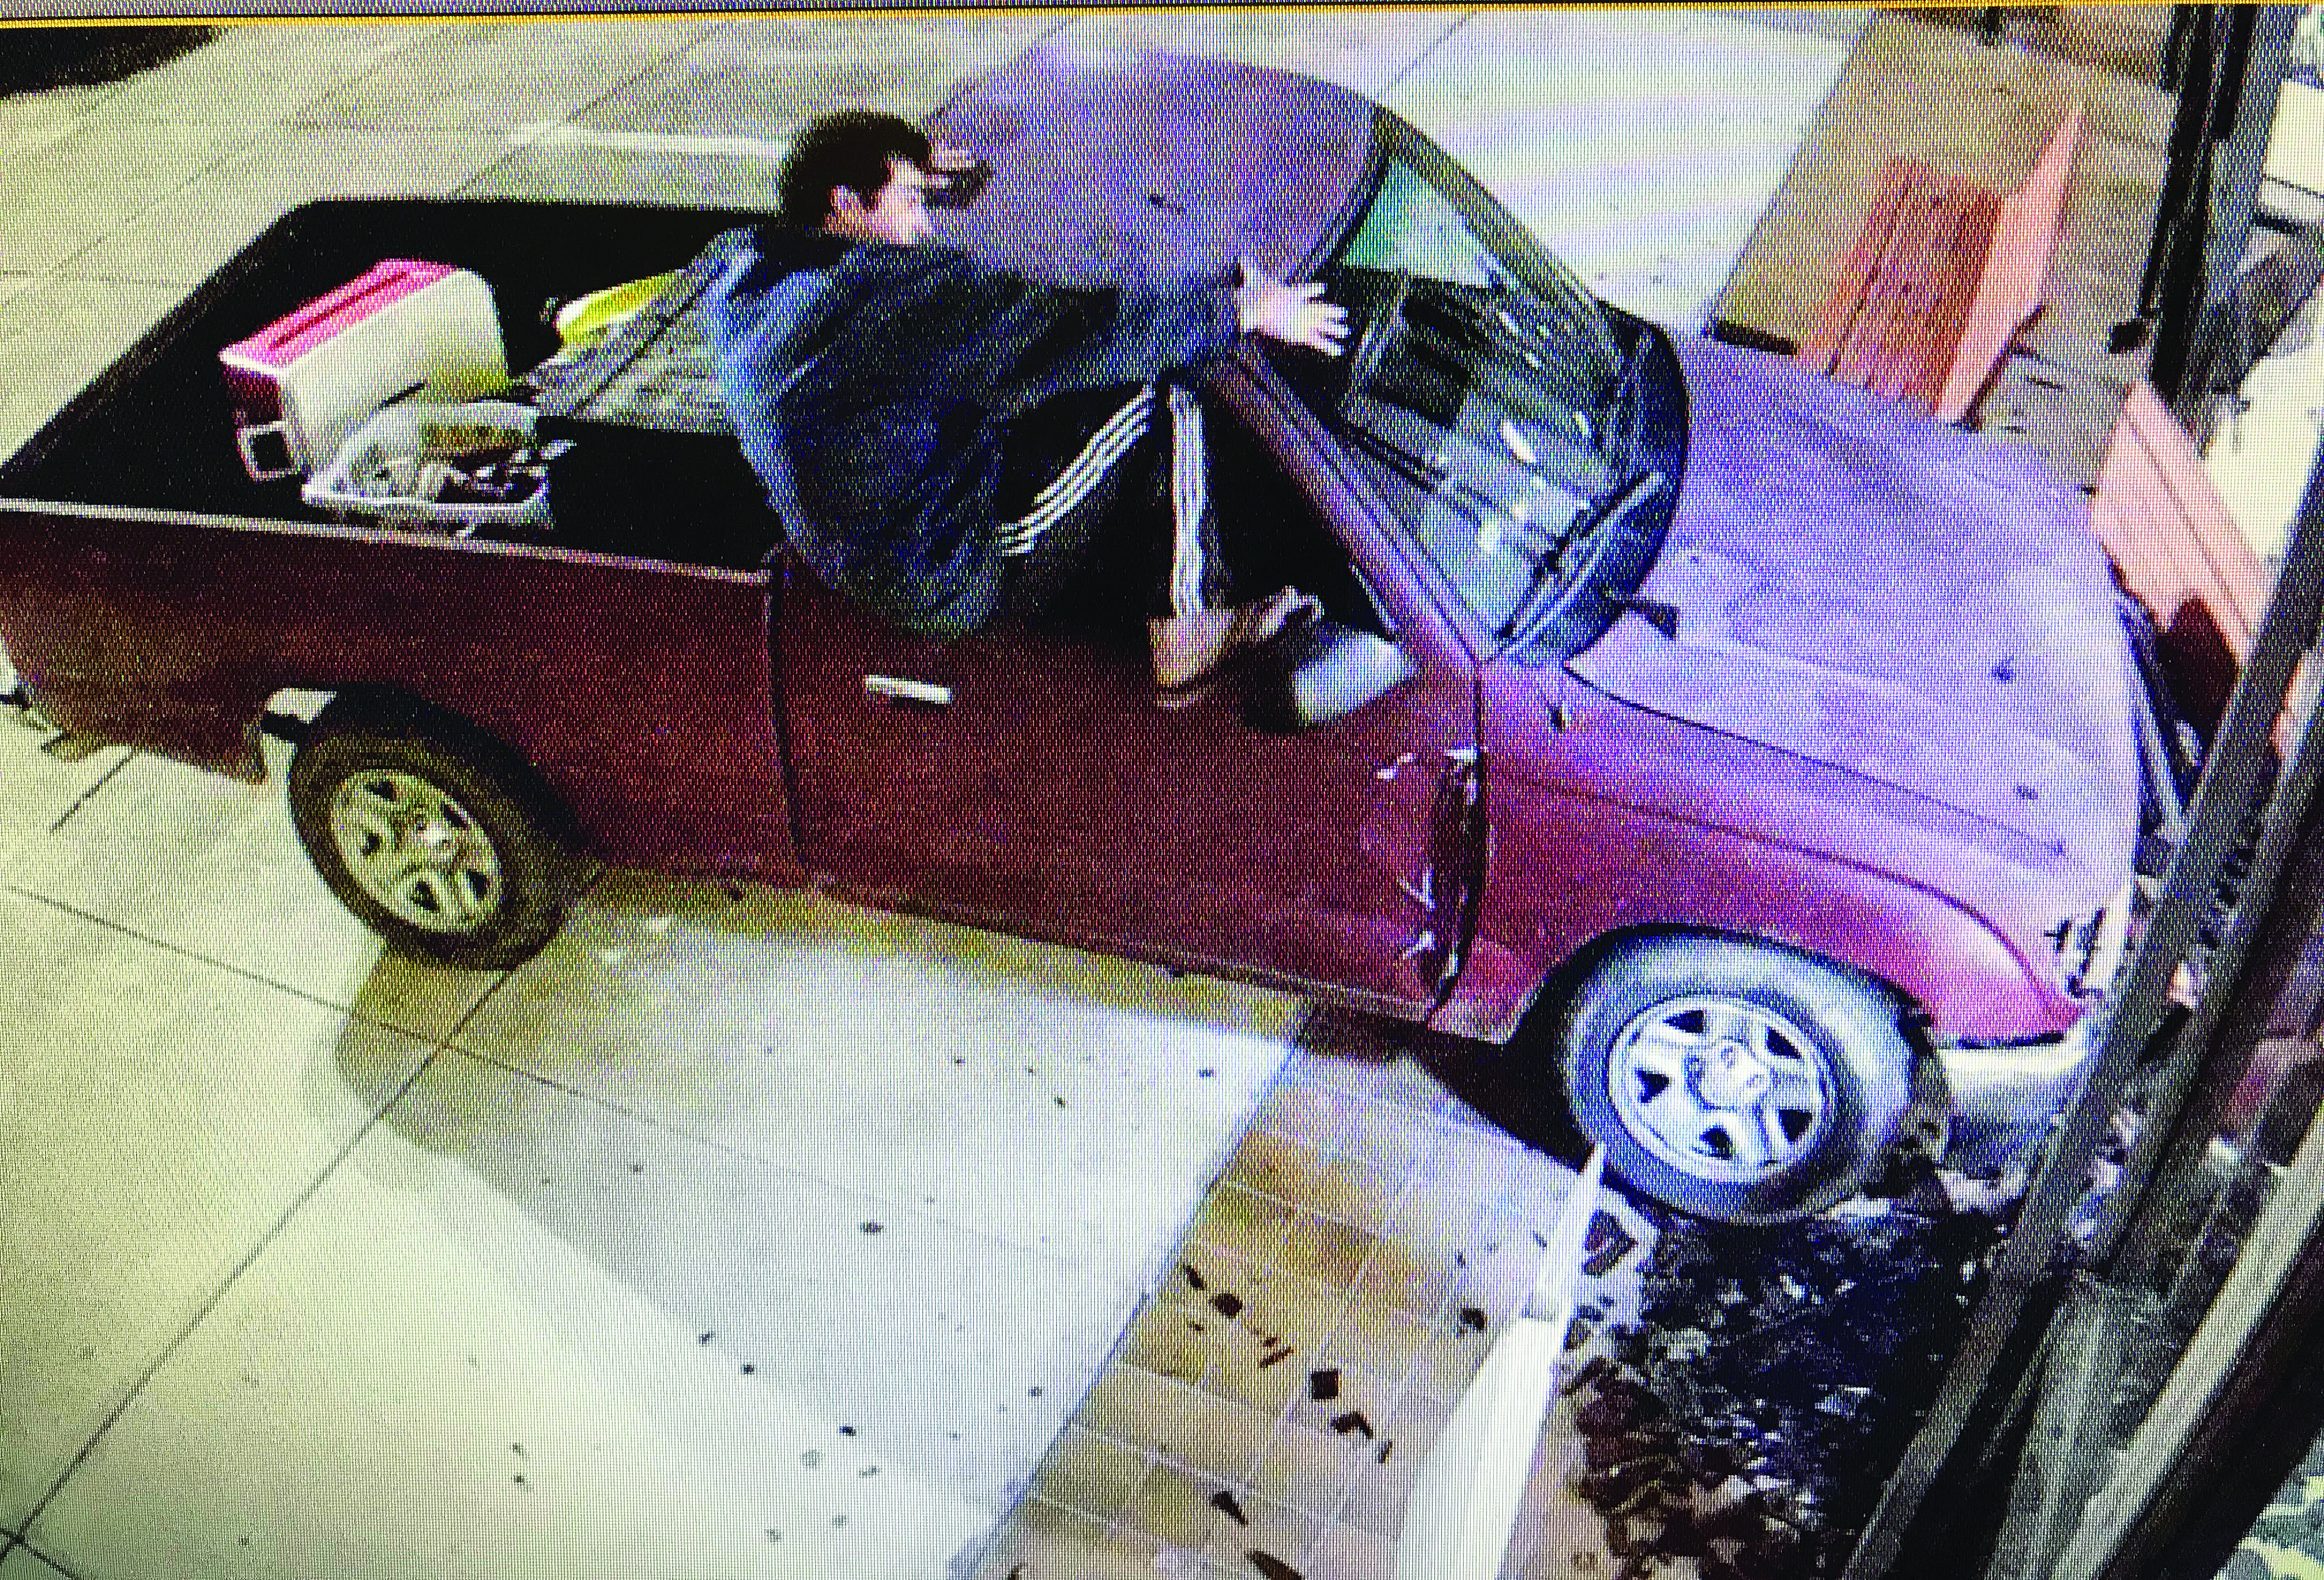 VEHICLE CRASHES INTO THE HARRISON COUNTY COURTHOUSE